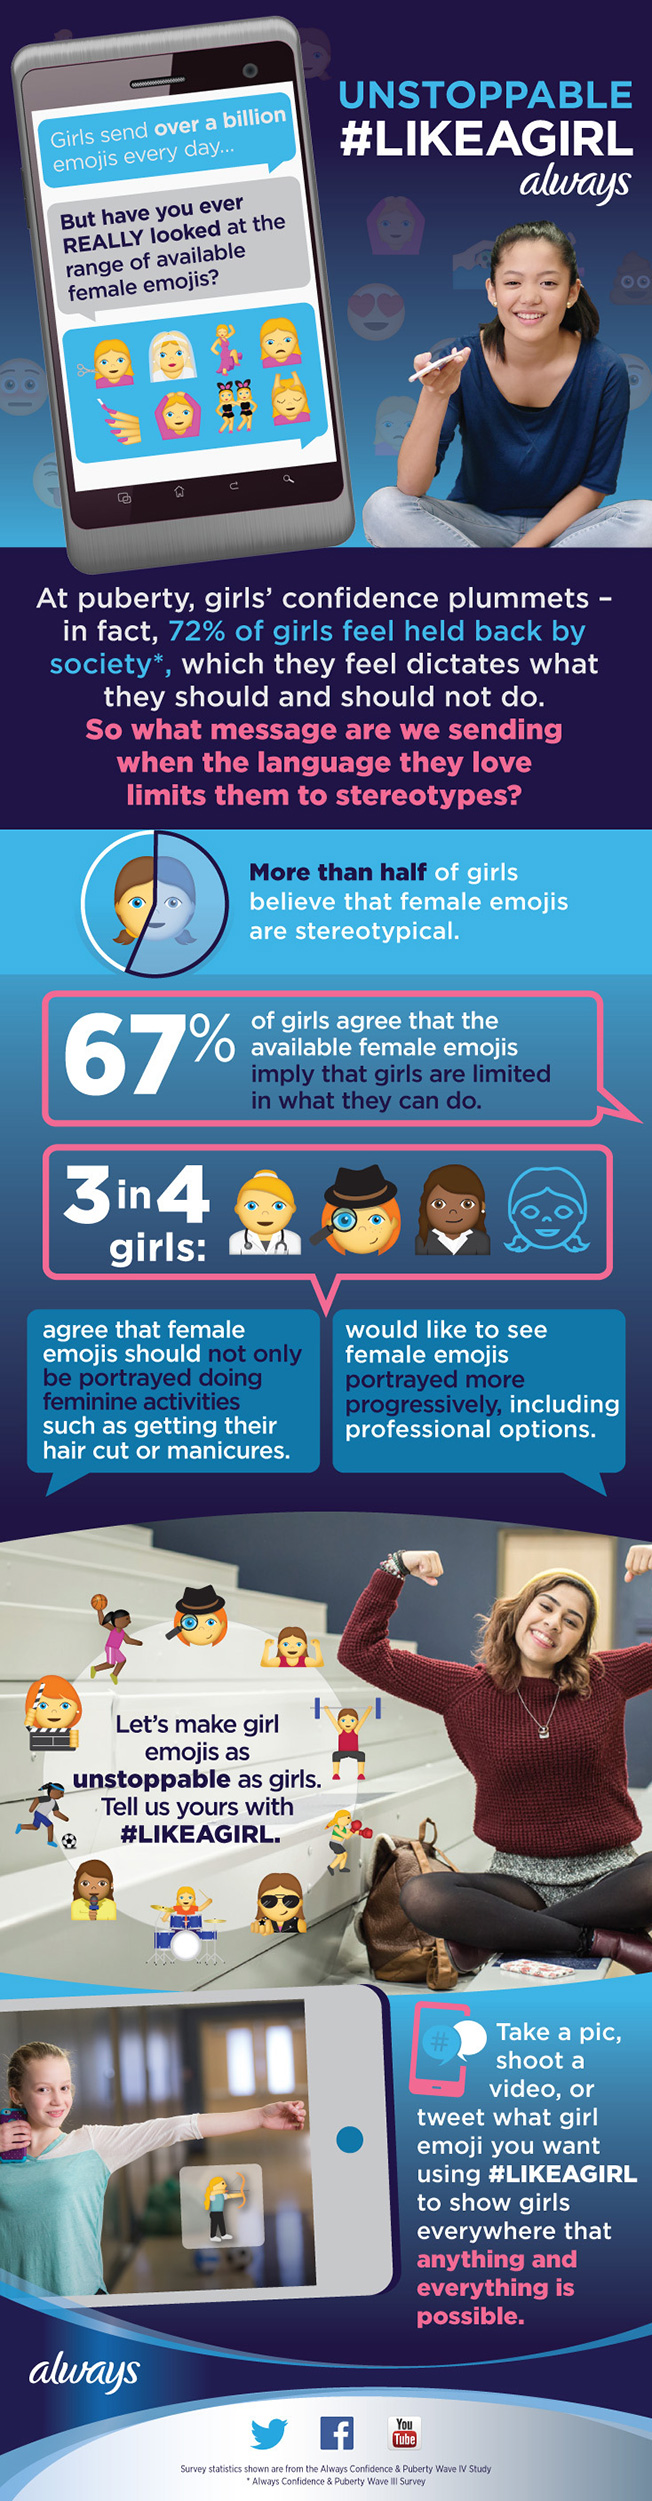 Not Every Brand Loves Emojis Always Like A Girl Says